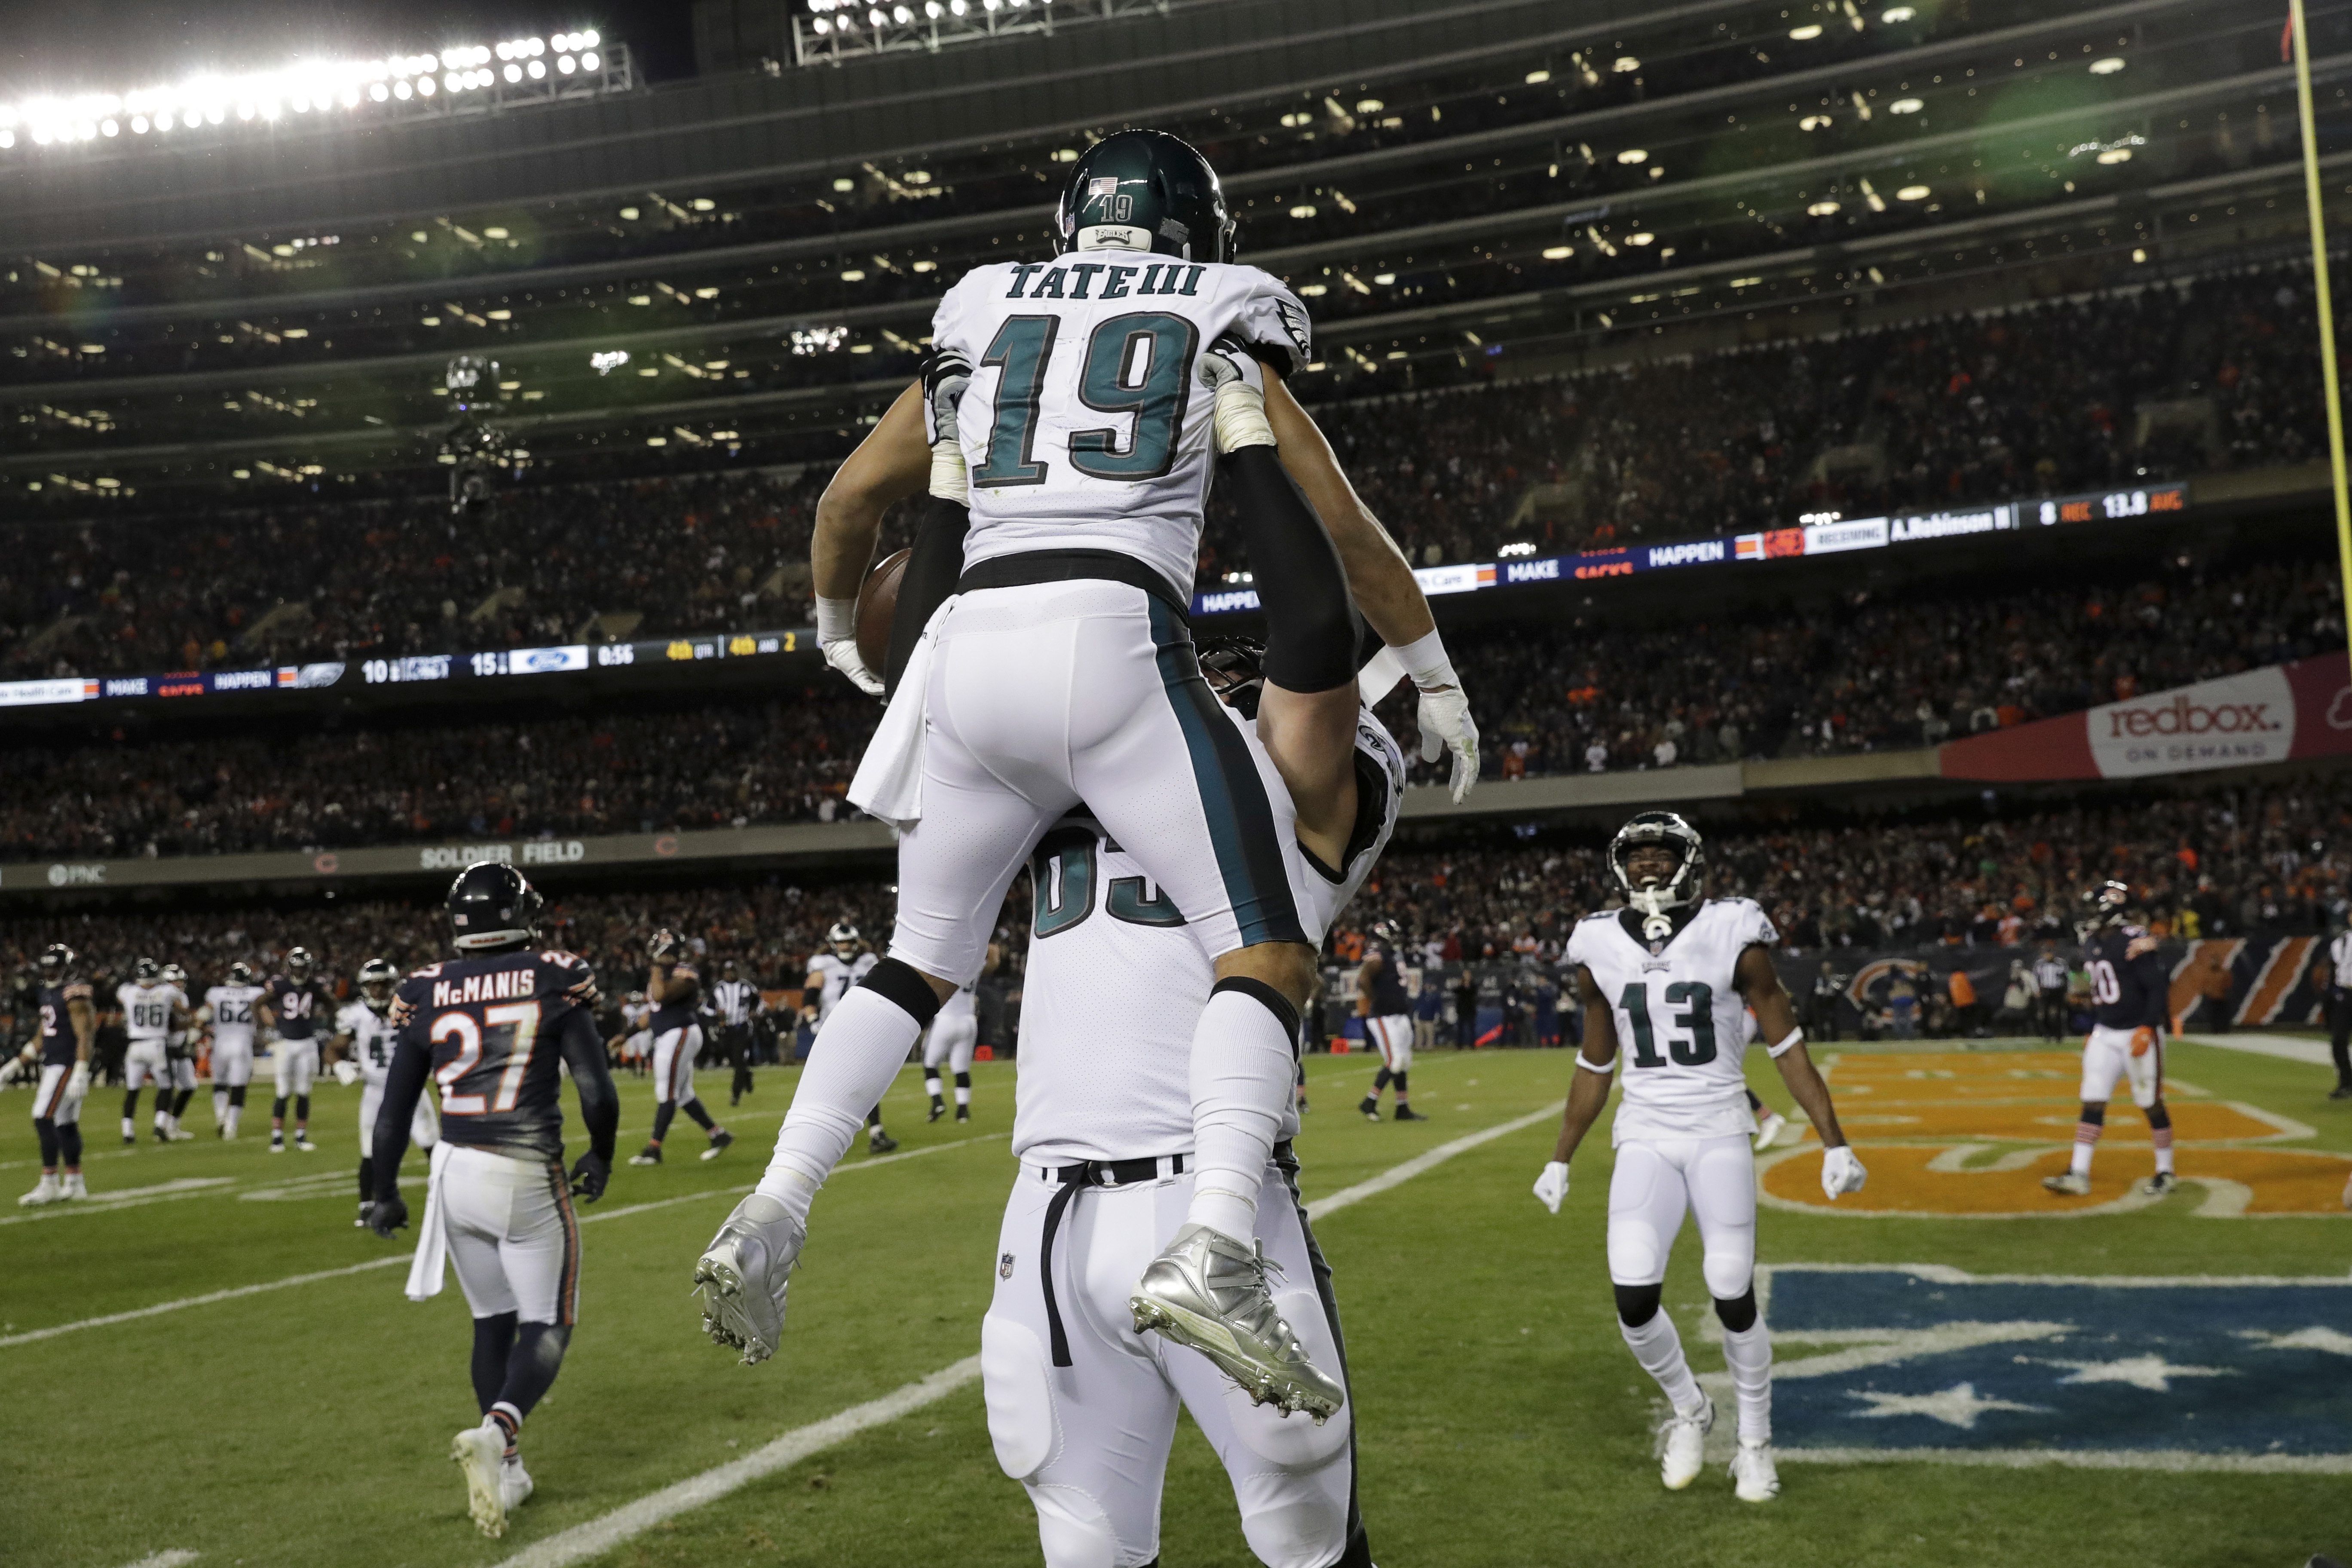 7a341b677a8 Nick Foles leads Eagles to 16-15 upset of Bears | The Daily Courier ...